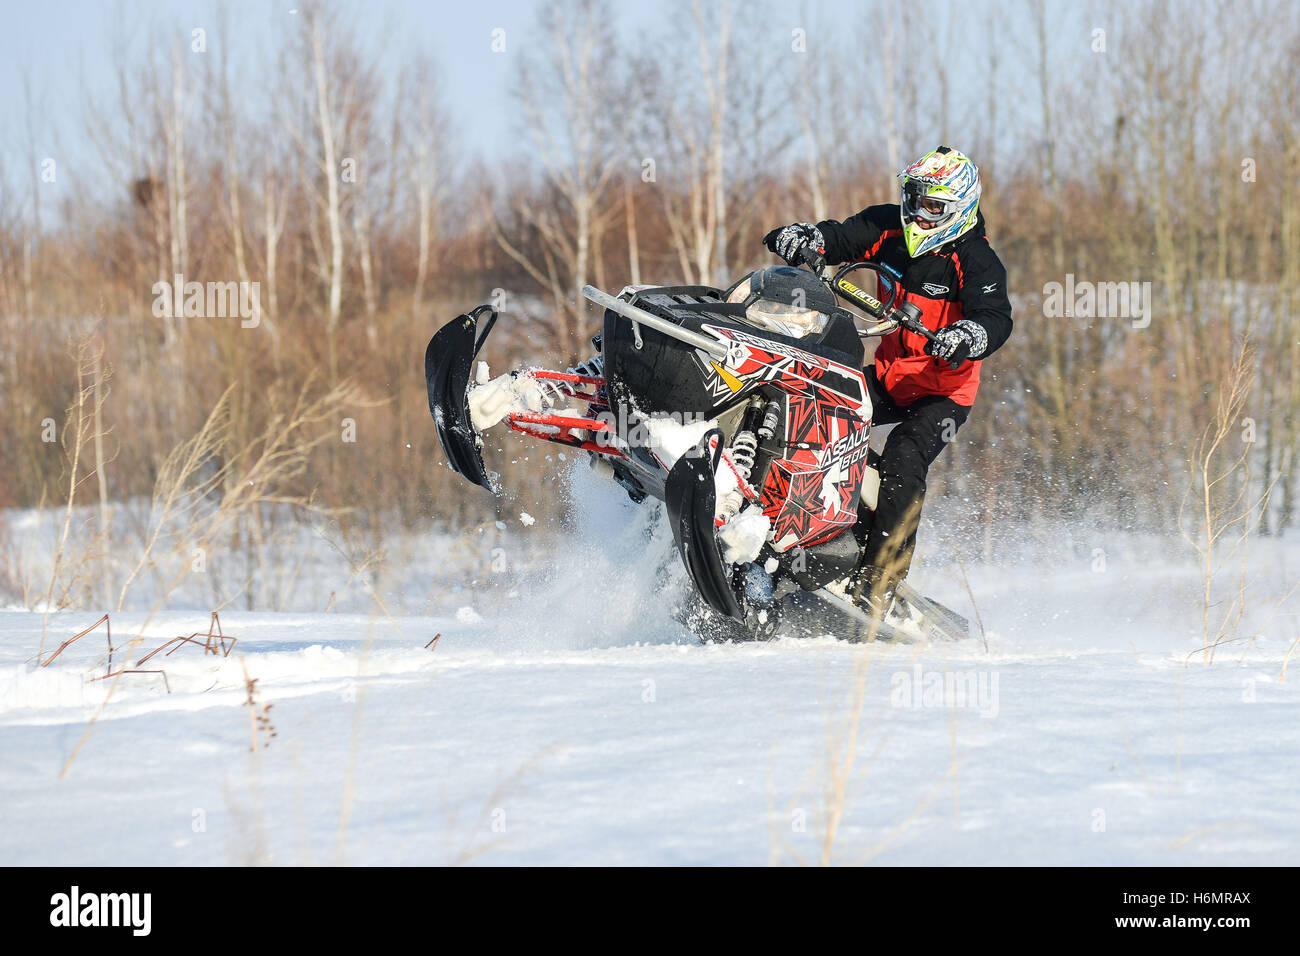 man and fast action snowmobile jumping - Stock Image